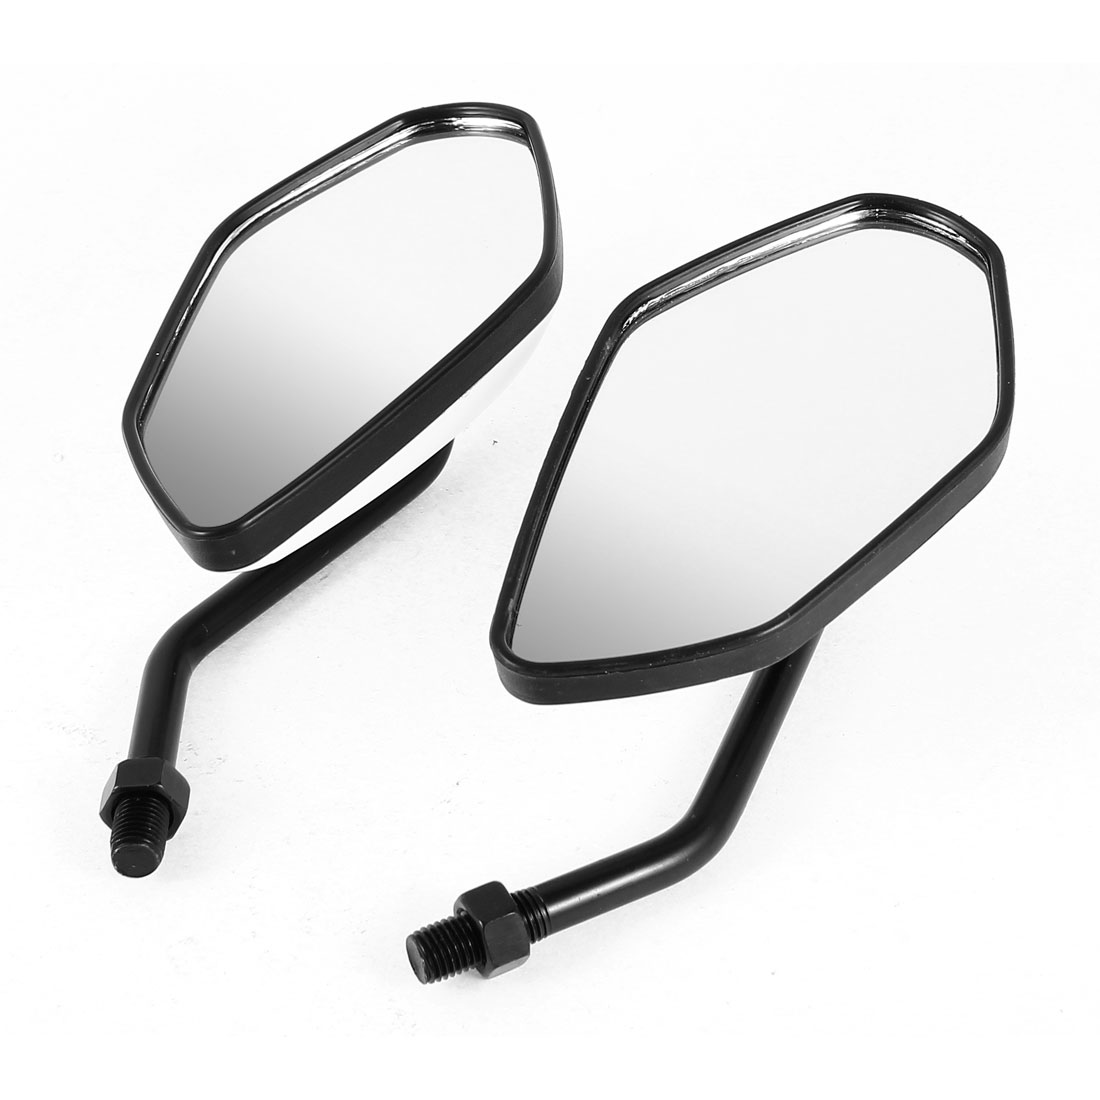 2 Pcs White Black Adjustable 360 Degree Wide Angle Blind Spot Rearview Mirror for Motorbike